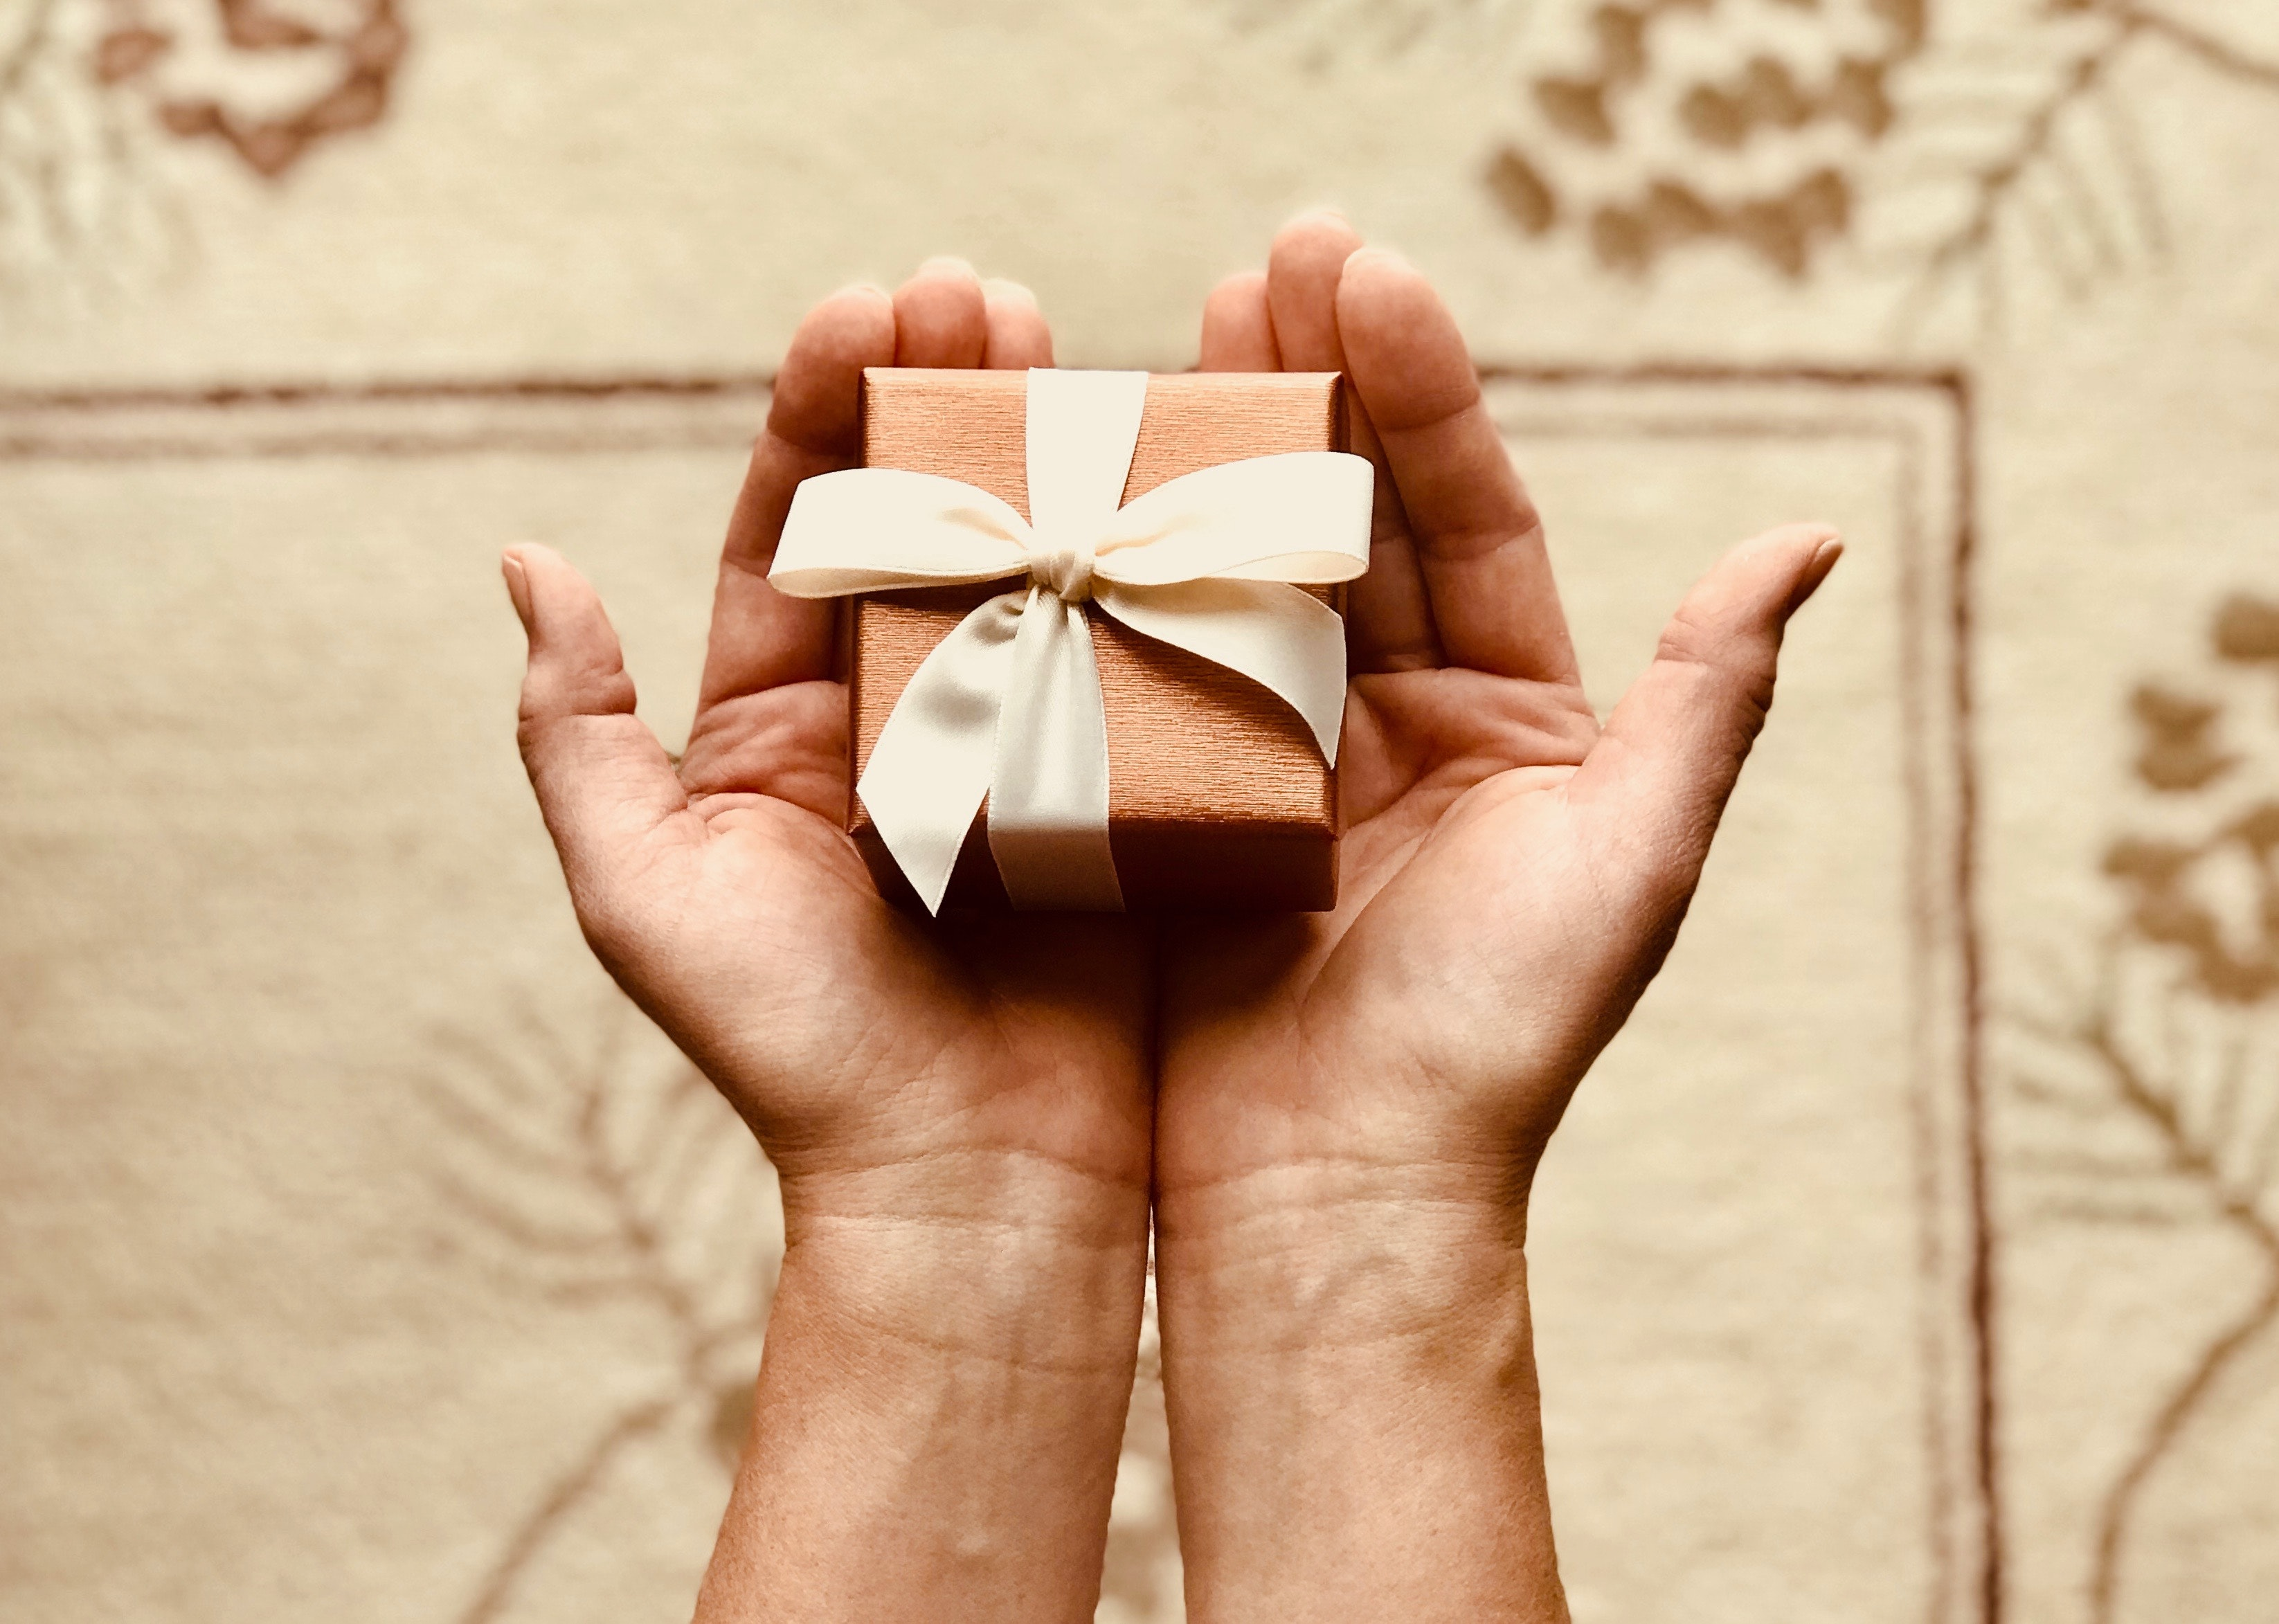 overhead shot of two hands holding a small gift wrapped with a bow